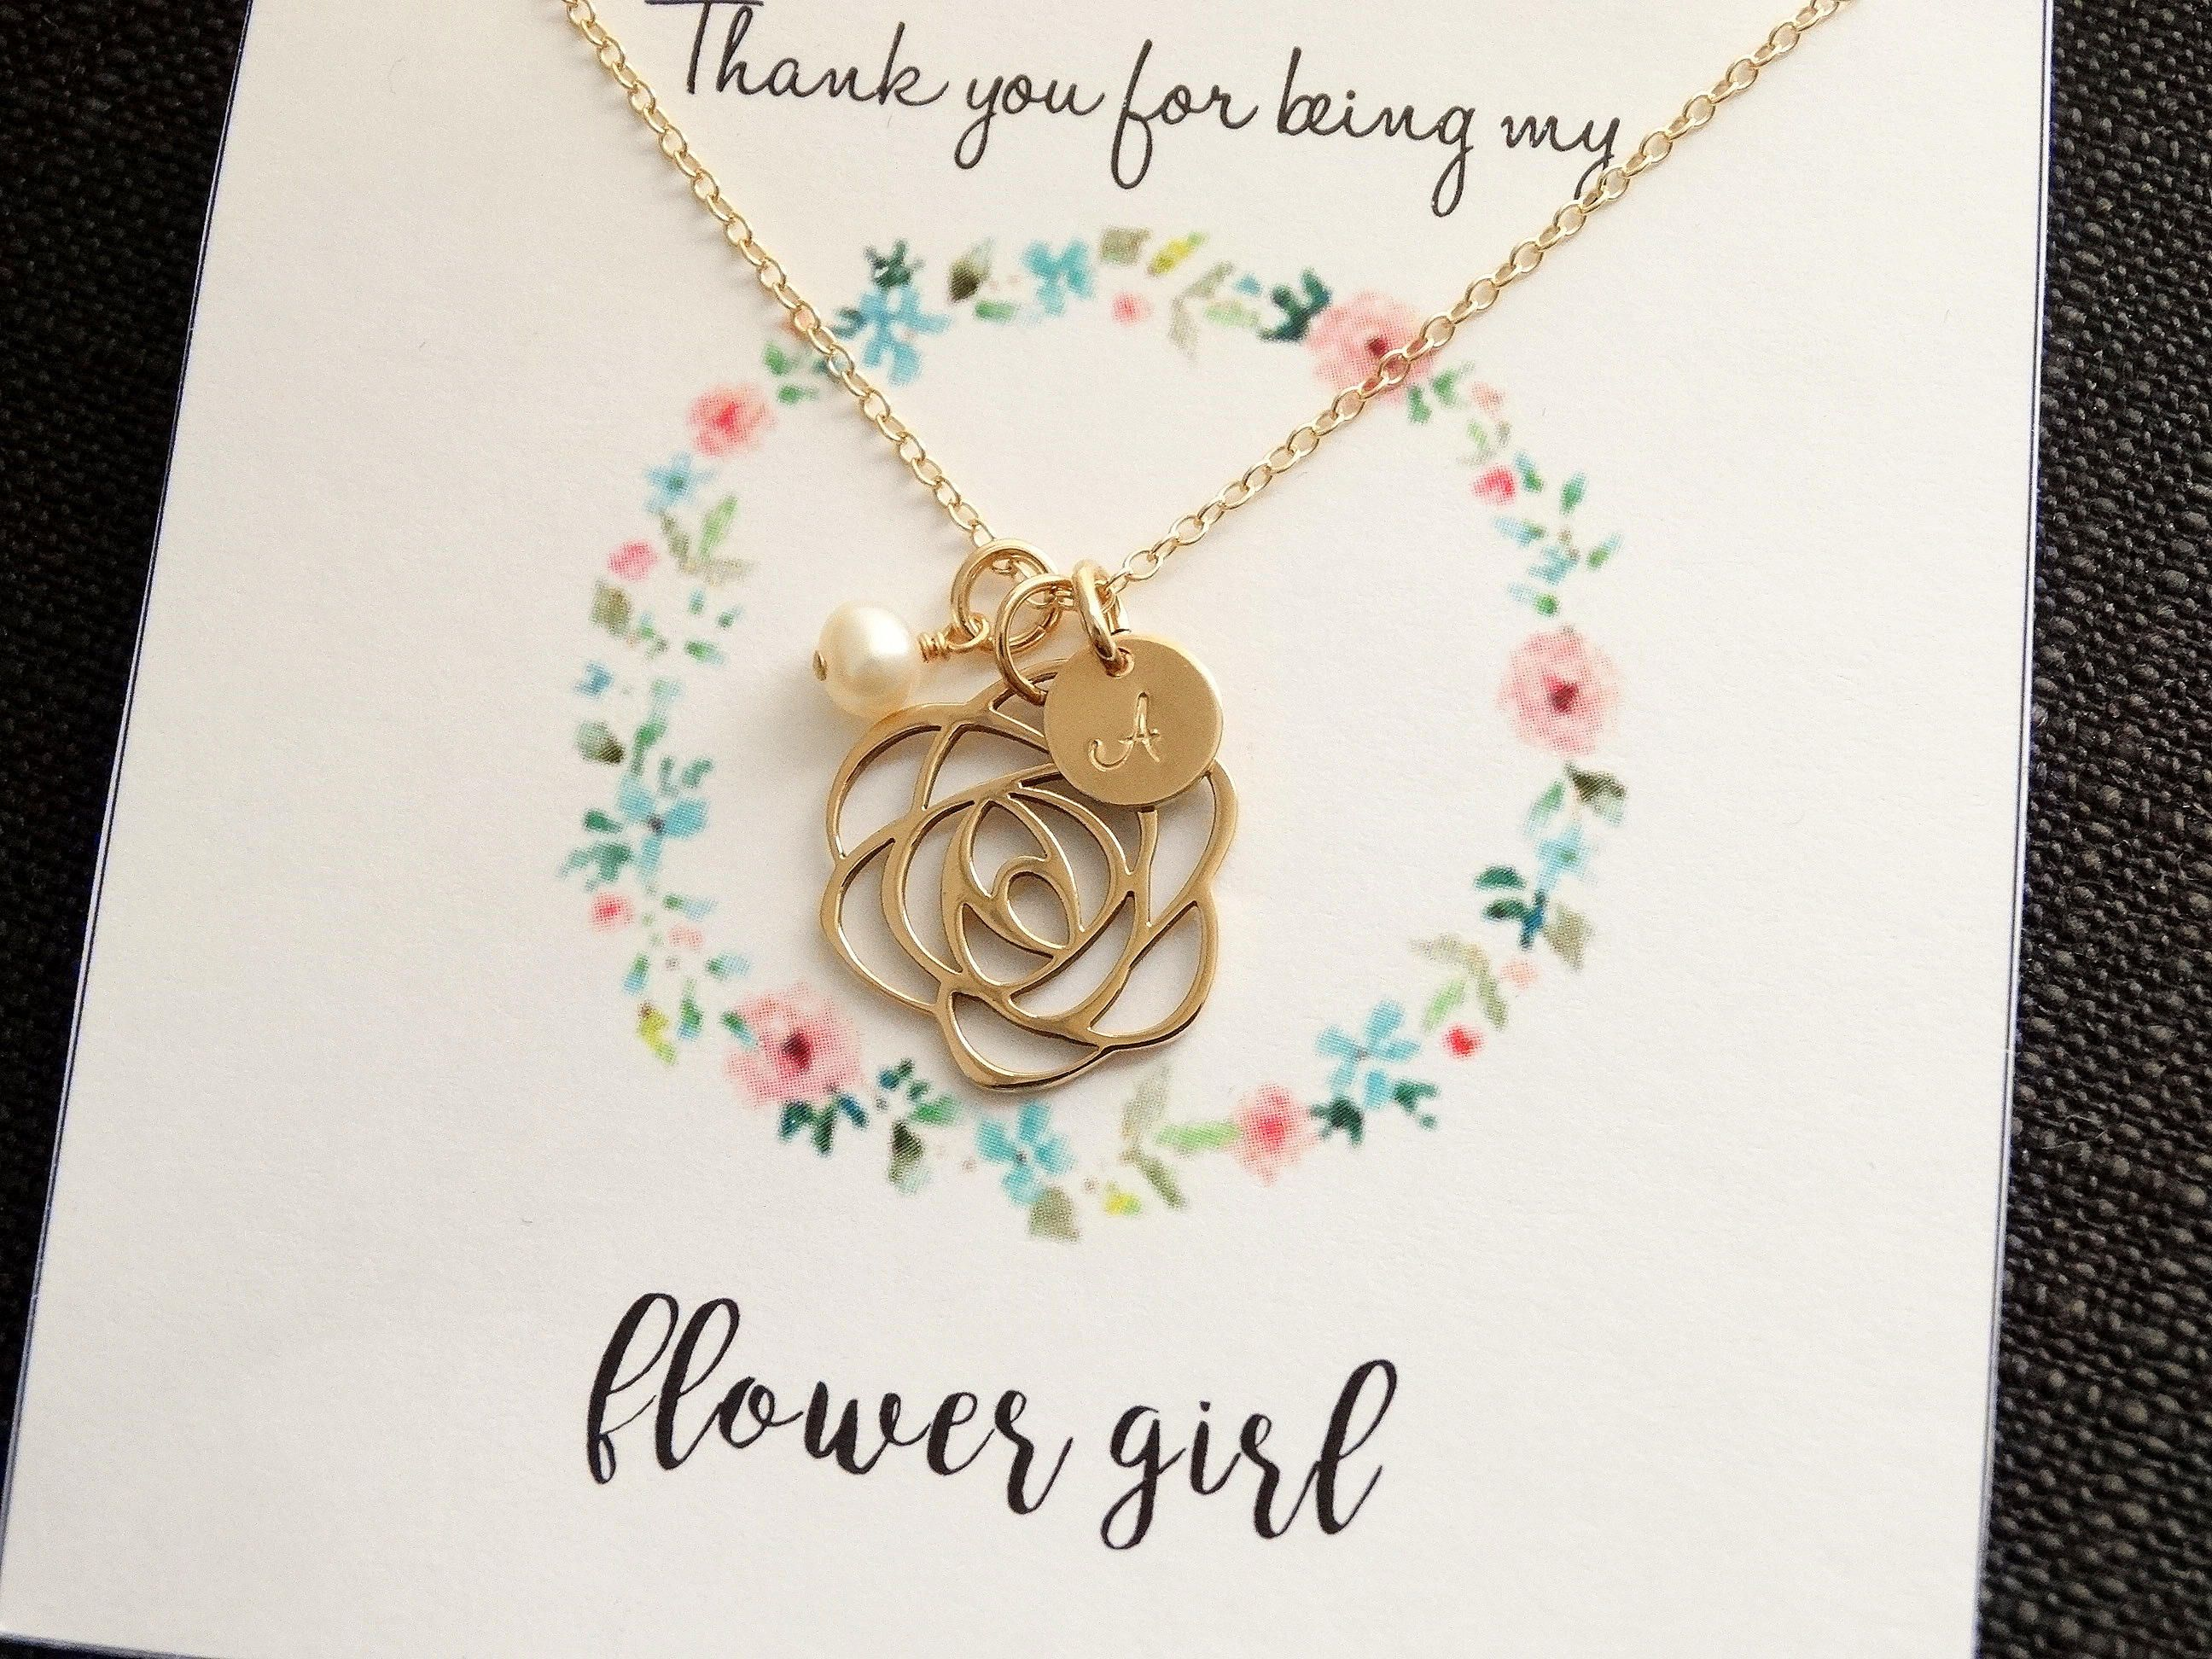 Flower Girl Gift Flower Girl Necklace With Message Card Favors